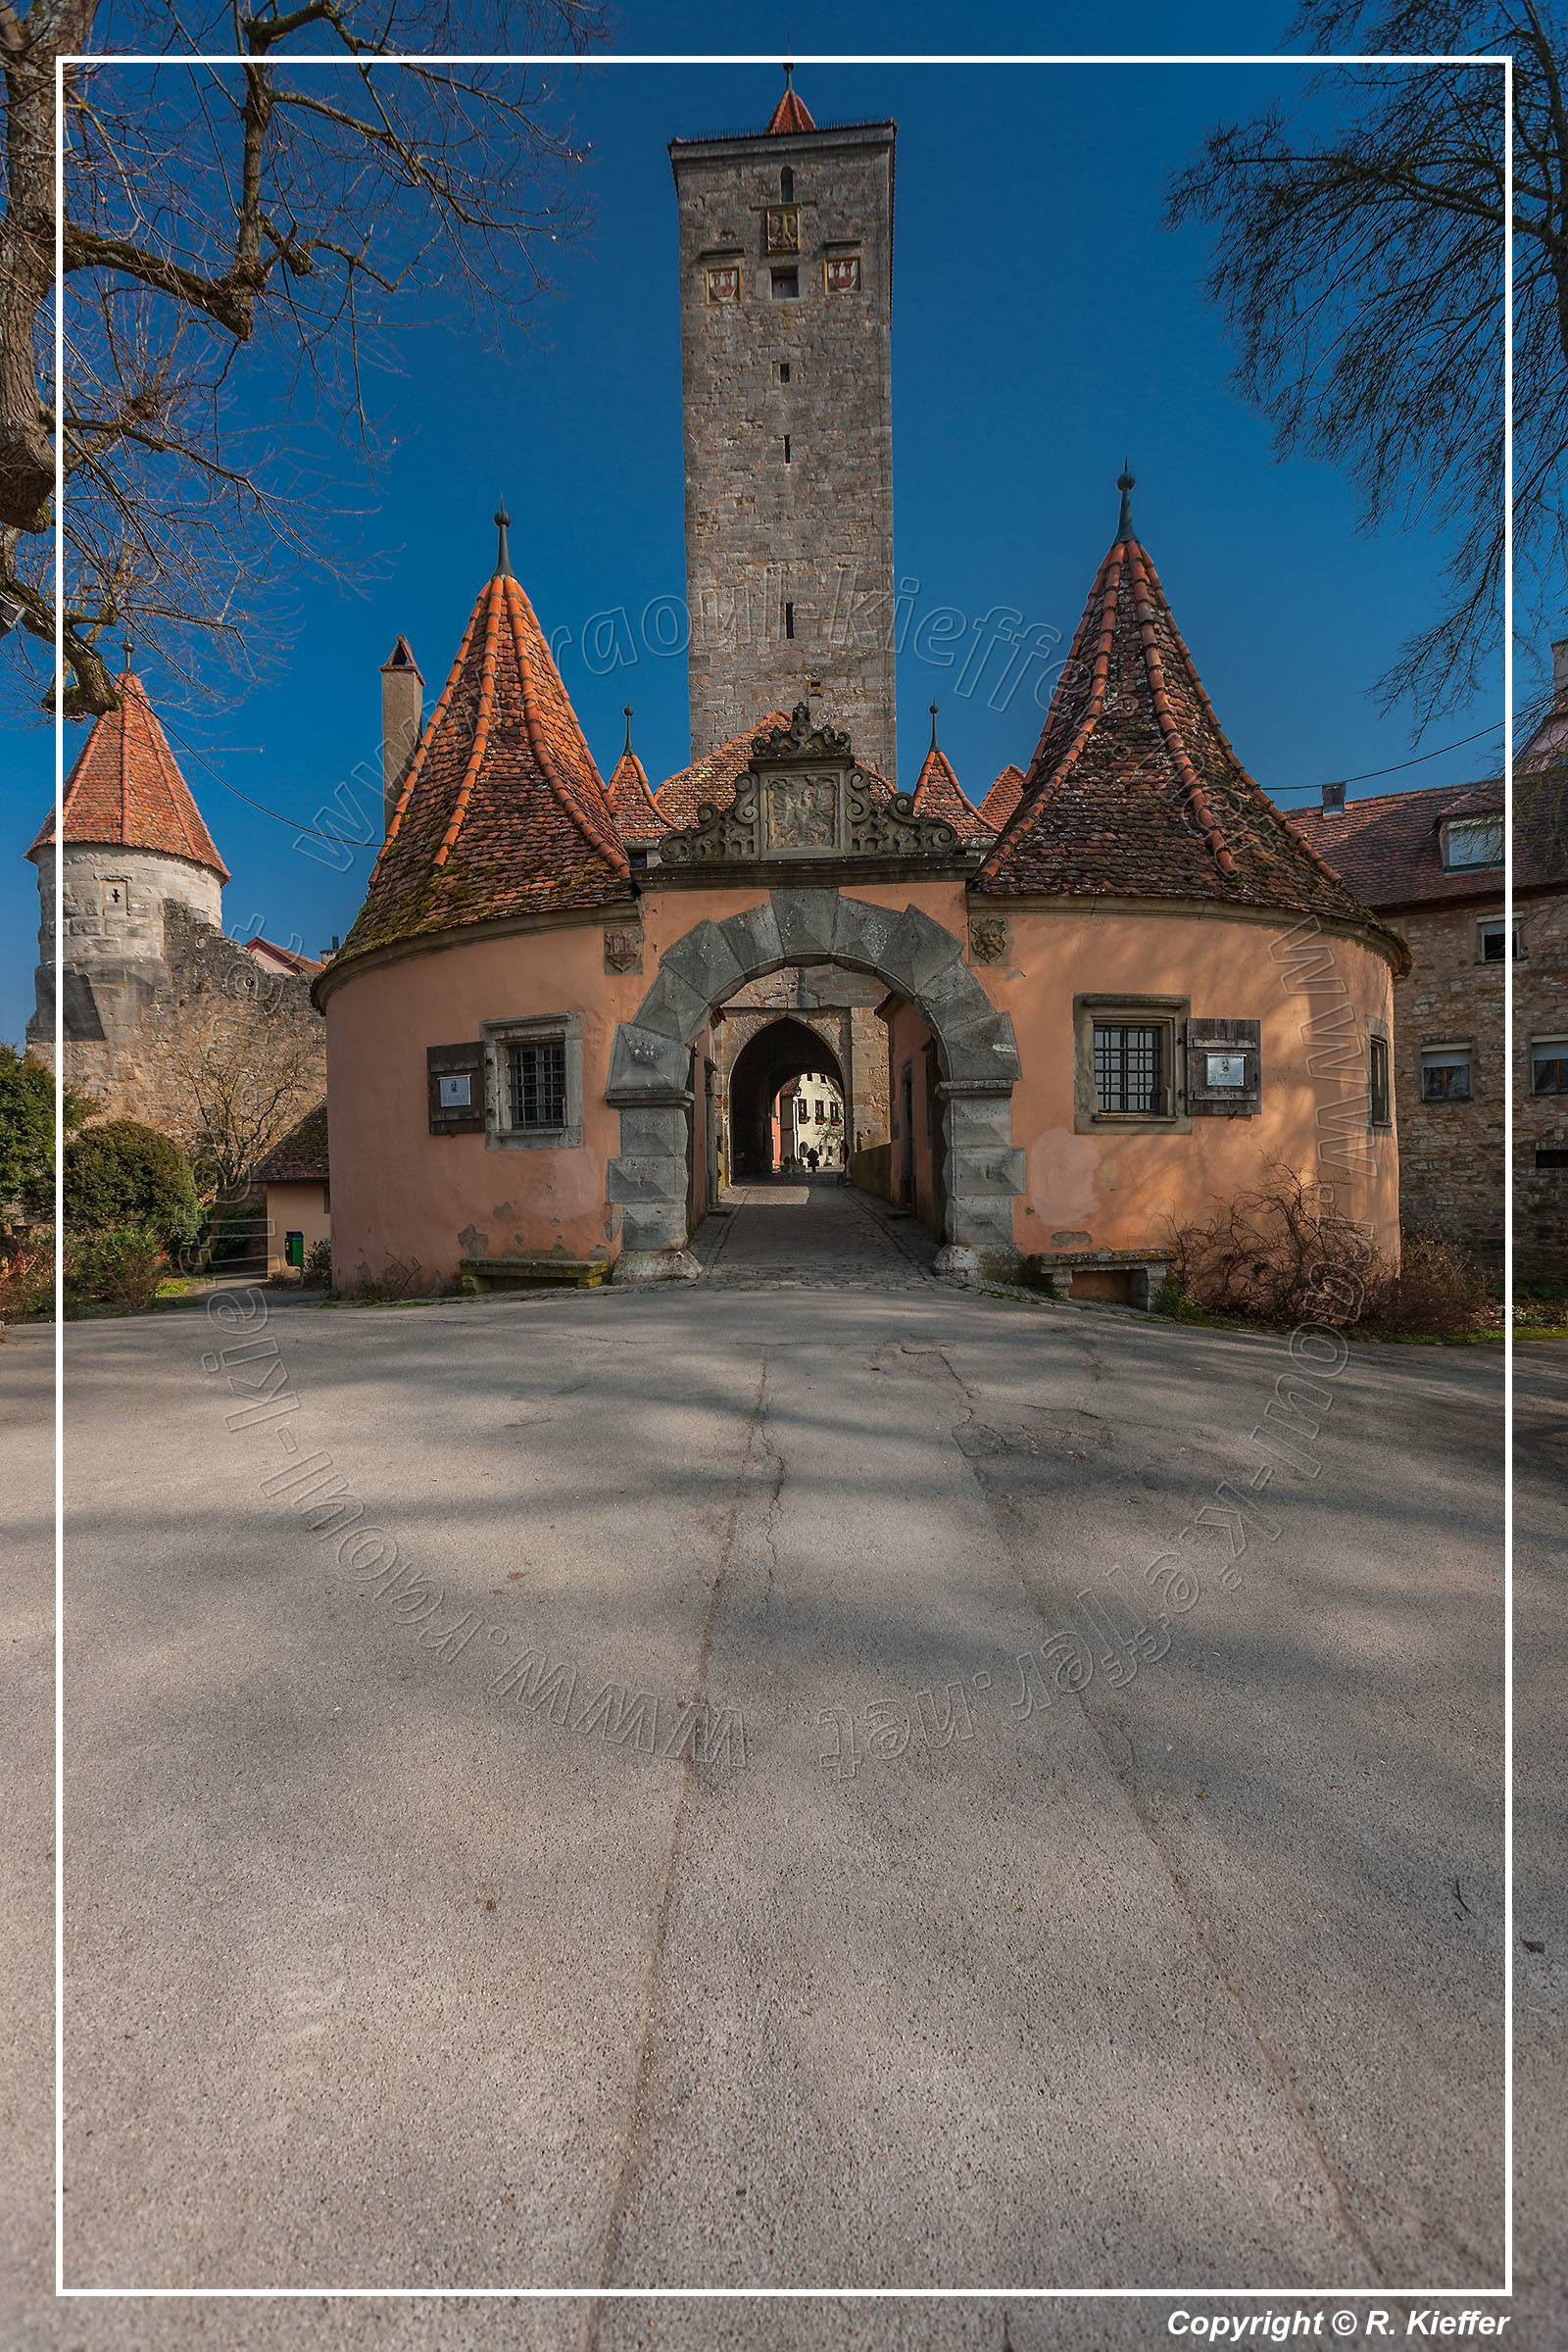 Single rothenburg ob der tauber